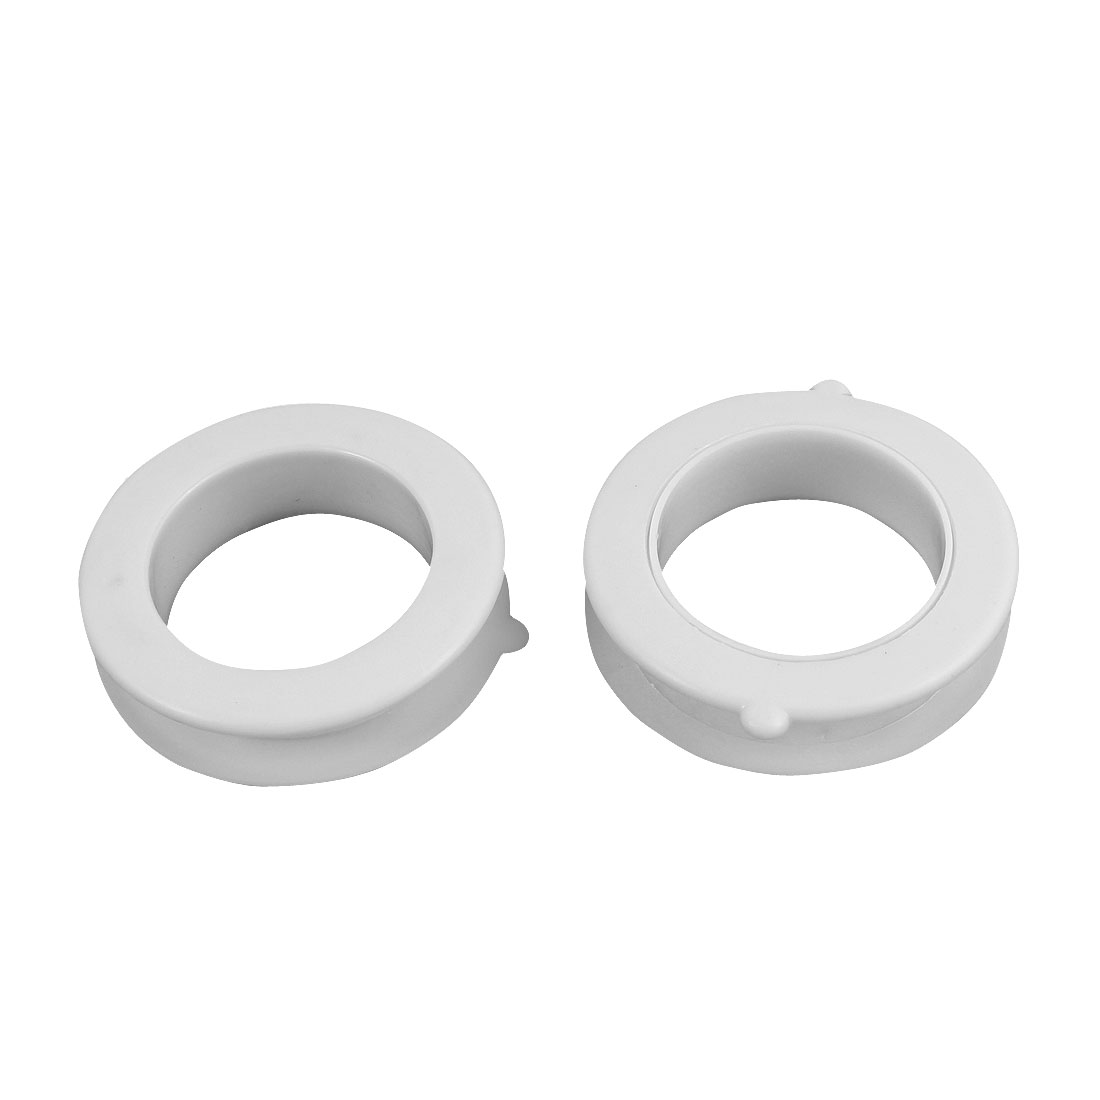 Household Sink Water Pipe Rings White 87mm x 57mm x 24mm 2Pcs